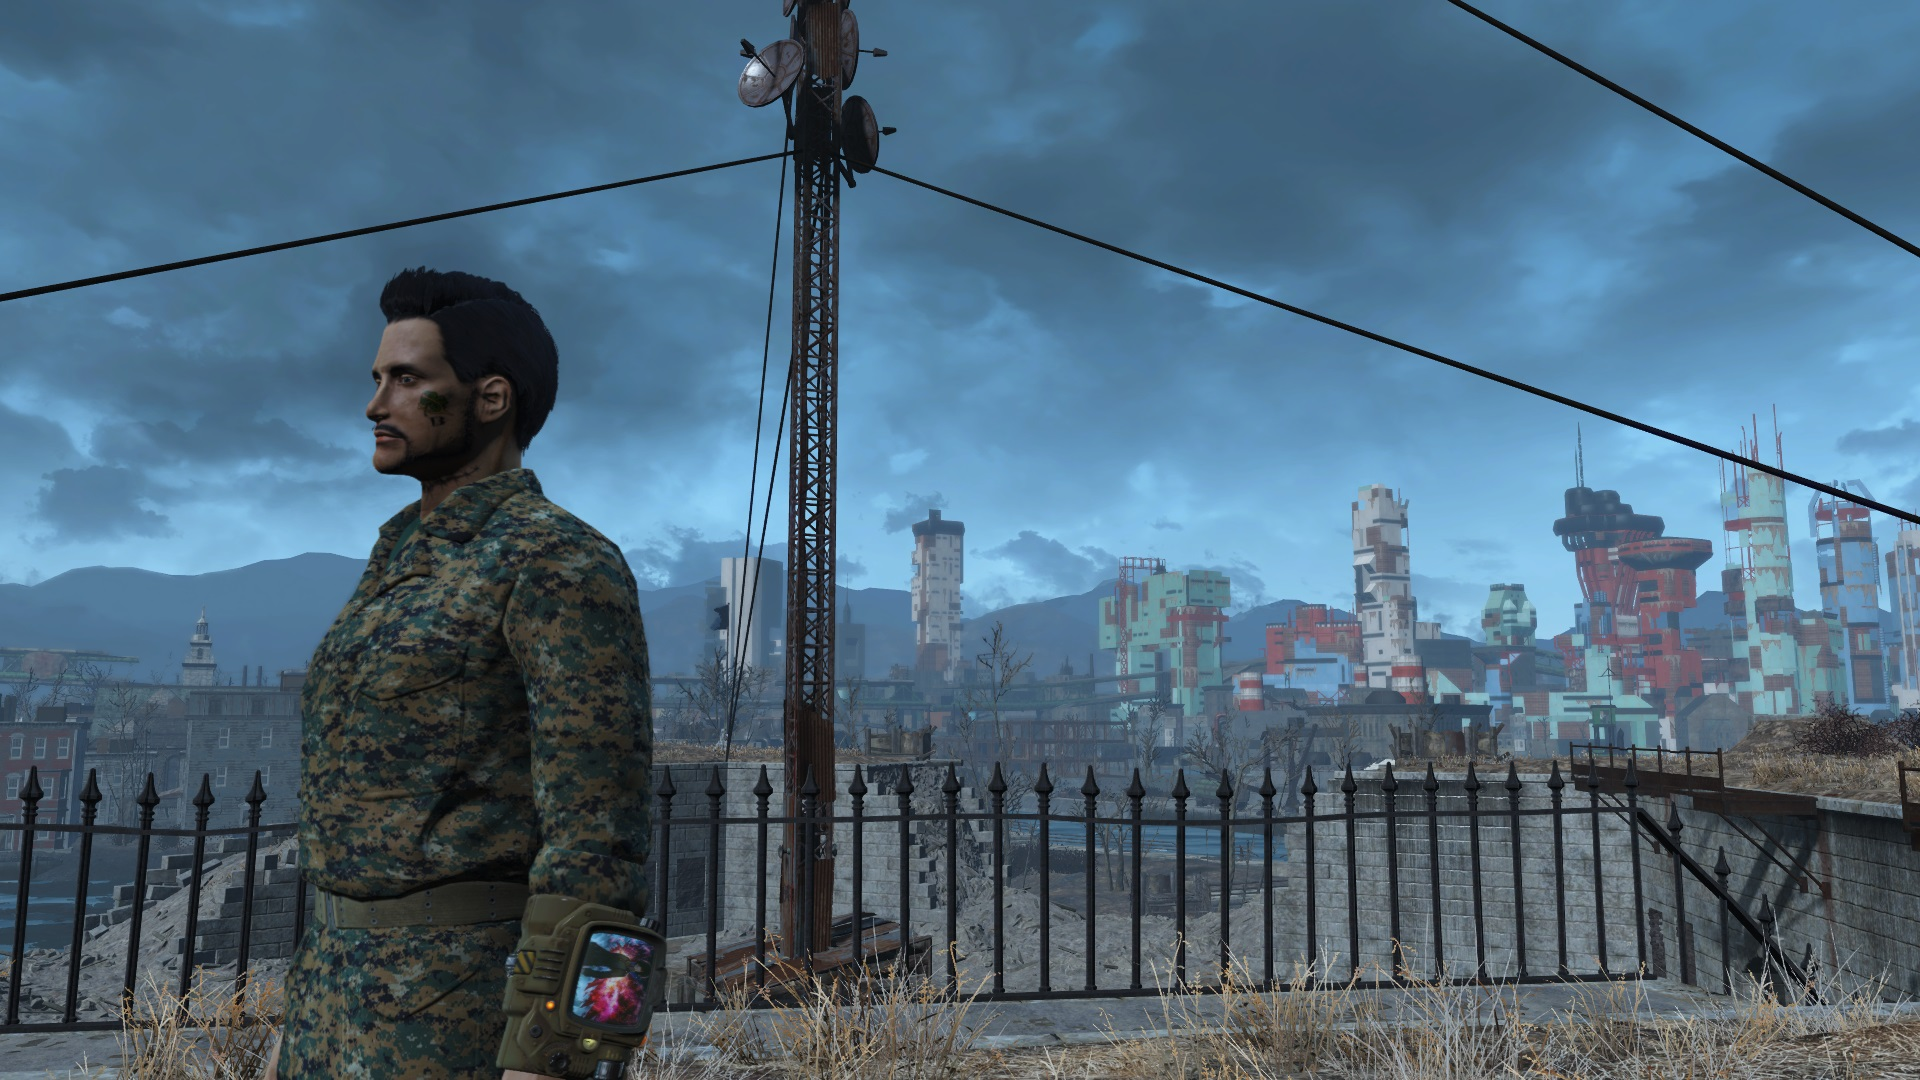 FO 4 MODERN MILITARY CAMOS - Fallout 4 / FO4 mods